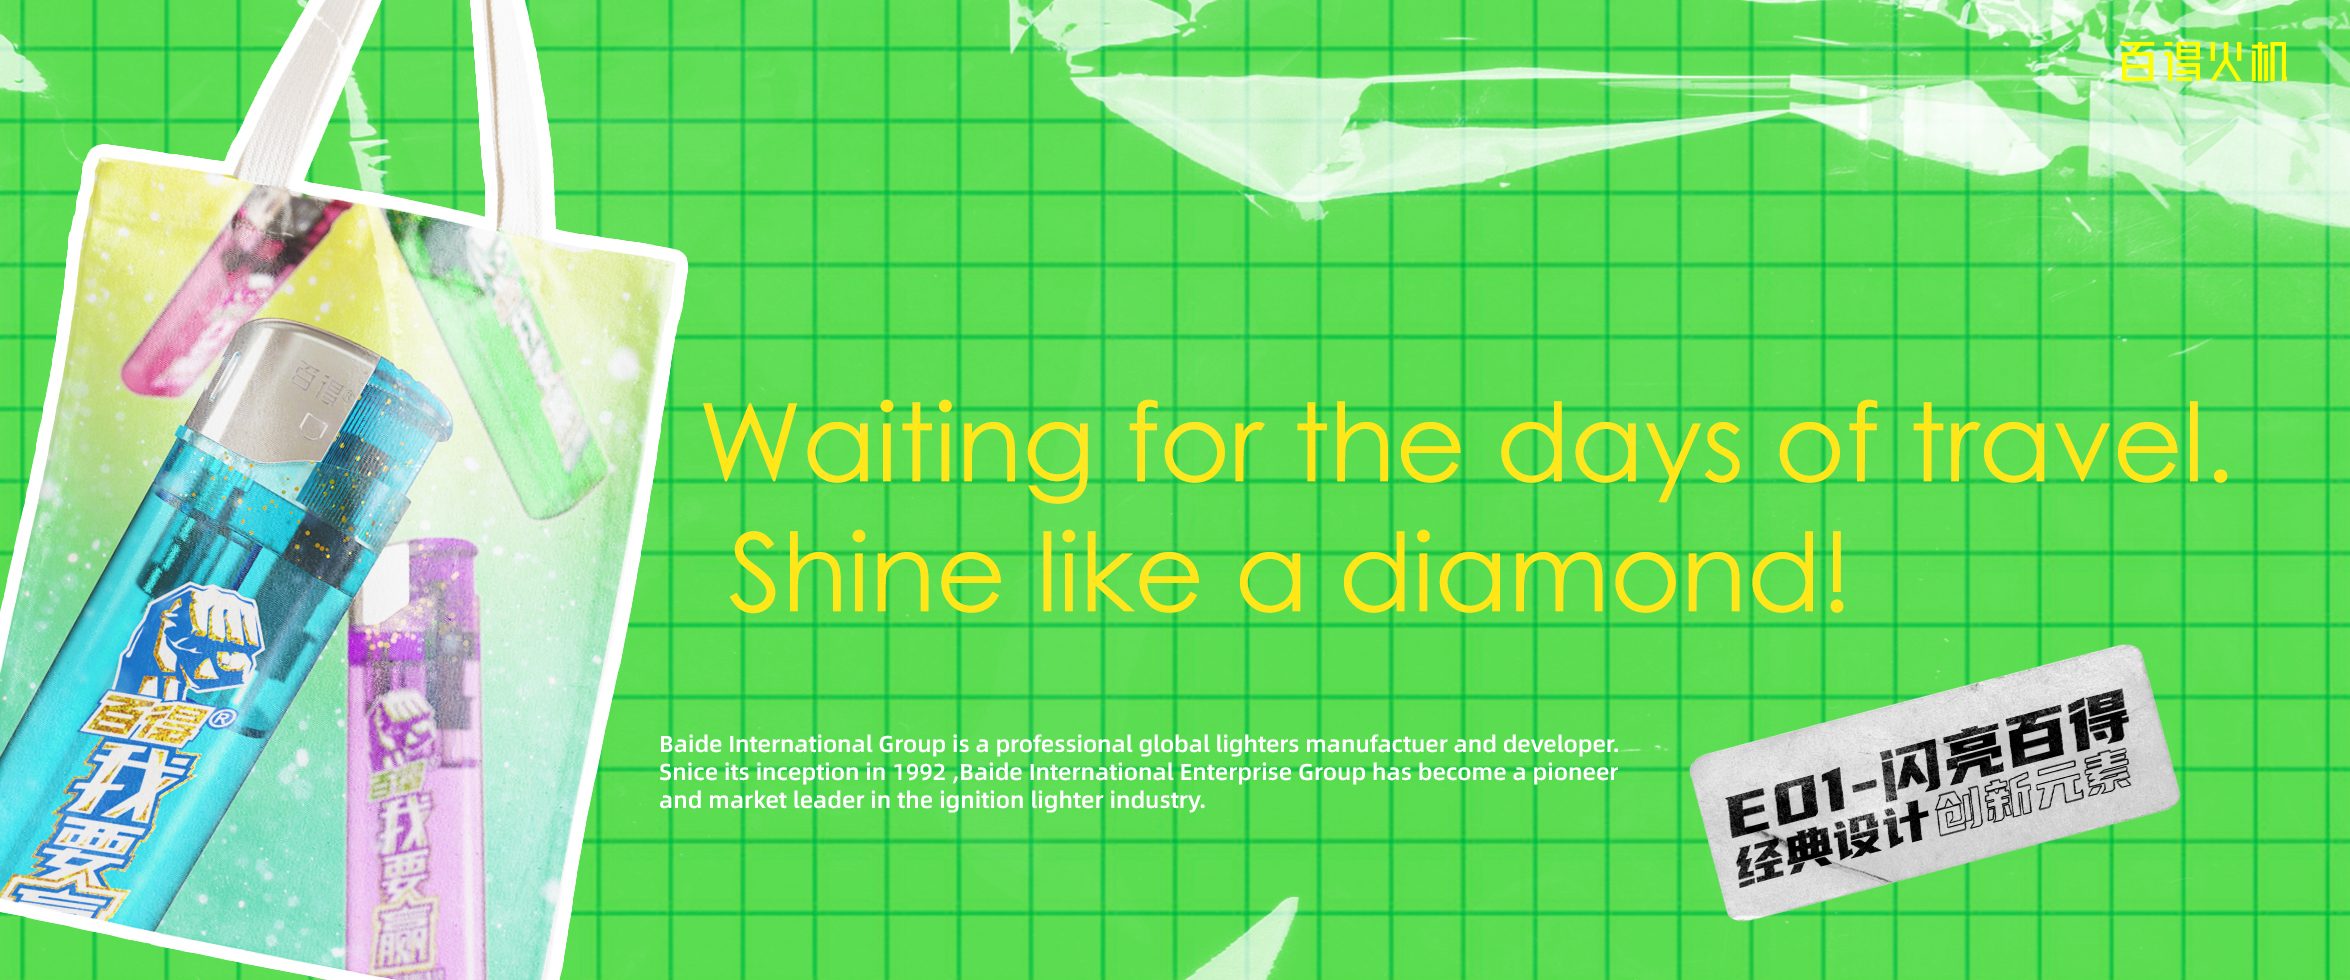 Waiting for the days of travel. Shine like a diamond!